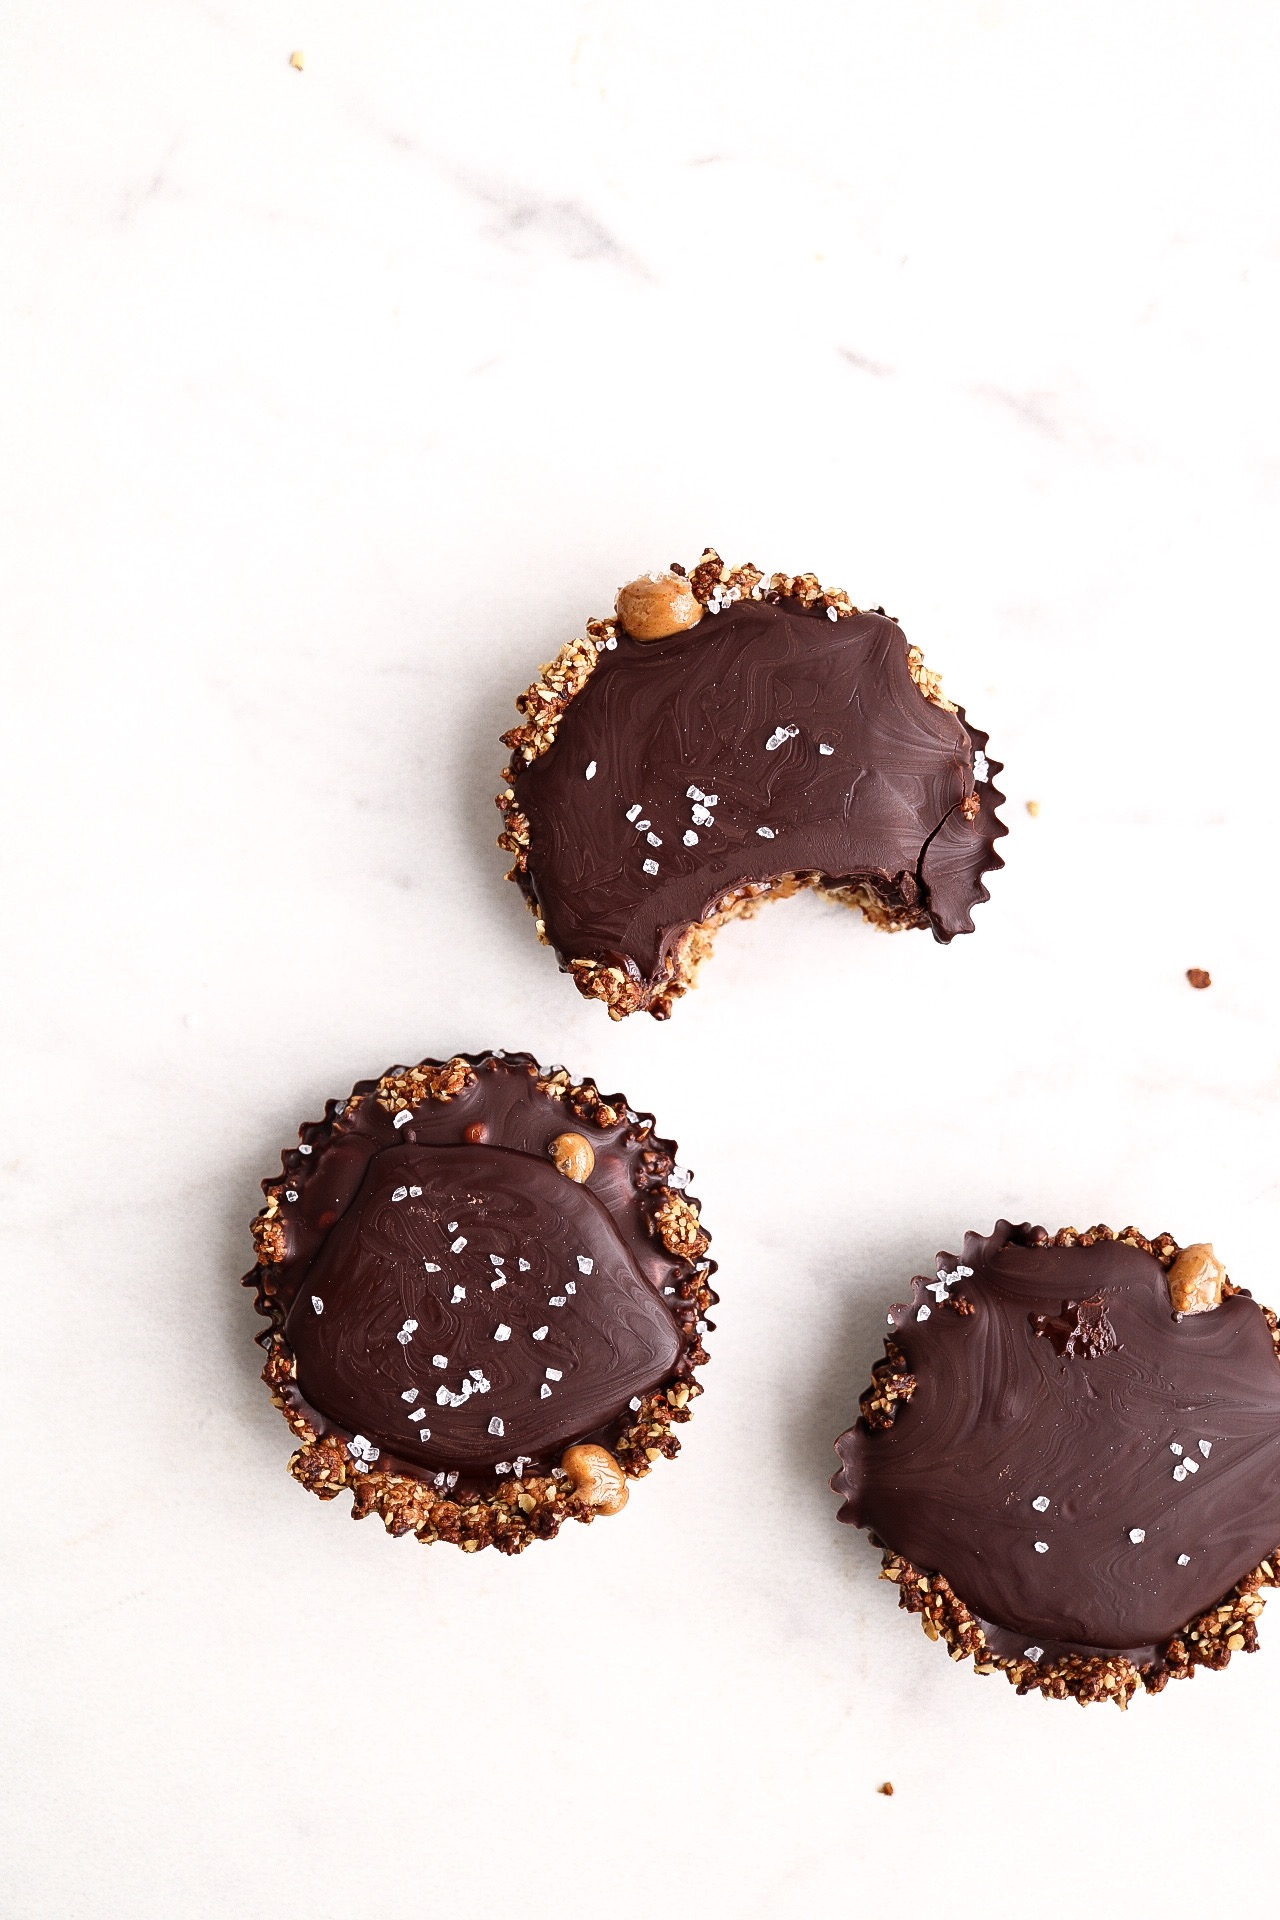 Chocolate Peanut Butter Granola Cups - INGREDIENTS:1 cup old fashioned oats1/3 cup walnuts1/2 cup raisins1/4 tsp saltSalted peanut butter1 bar Alter Eco dark chocolateINSTRUCTIONS:Preheat your oven to 350F. In a food processor, blend together the oats, walnuts, raisins, and salt. Line a 6 cup muffin tray with liners and place about 2 Tbsp of the dough into each cup. Press down and mold it into the cup, and bake at 350F for about 10 minutes. Allow the cups to cool and then place 1 Tbsp of salty peanut butter into each cup. Melt your bar of chocolate and layer it over the peanut butter layer, allowing the cups to chill in the fridge until firm. Add another layer of chocolate once the first has firmed, and allow it to harden before enjoying!